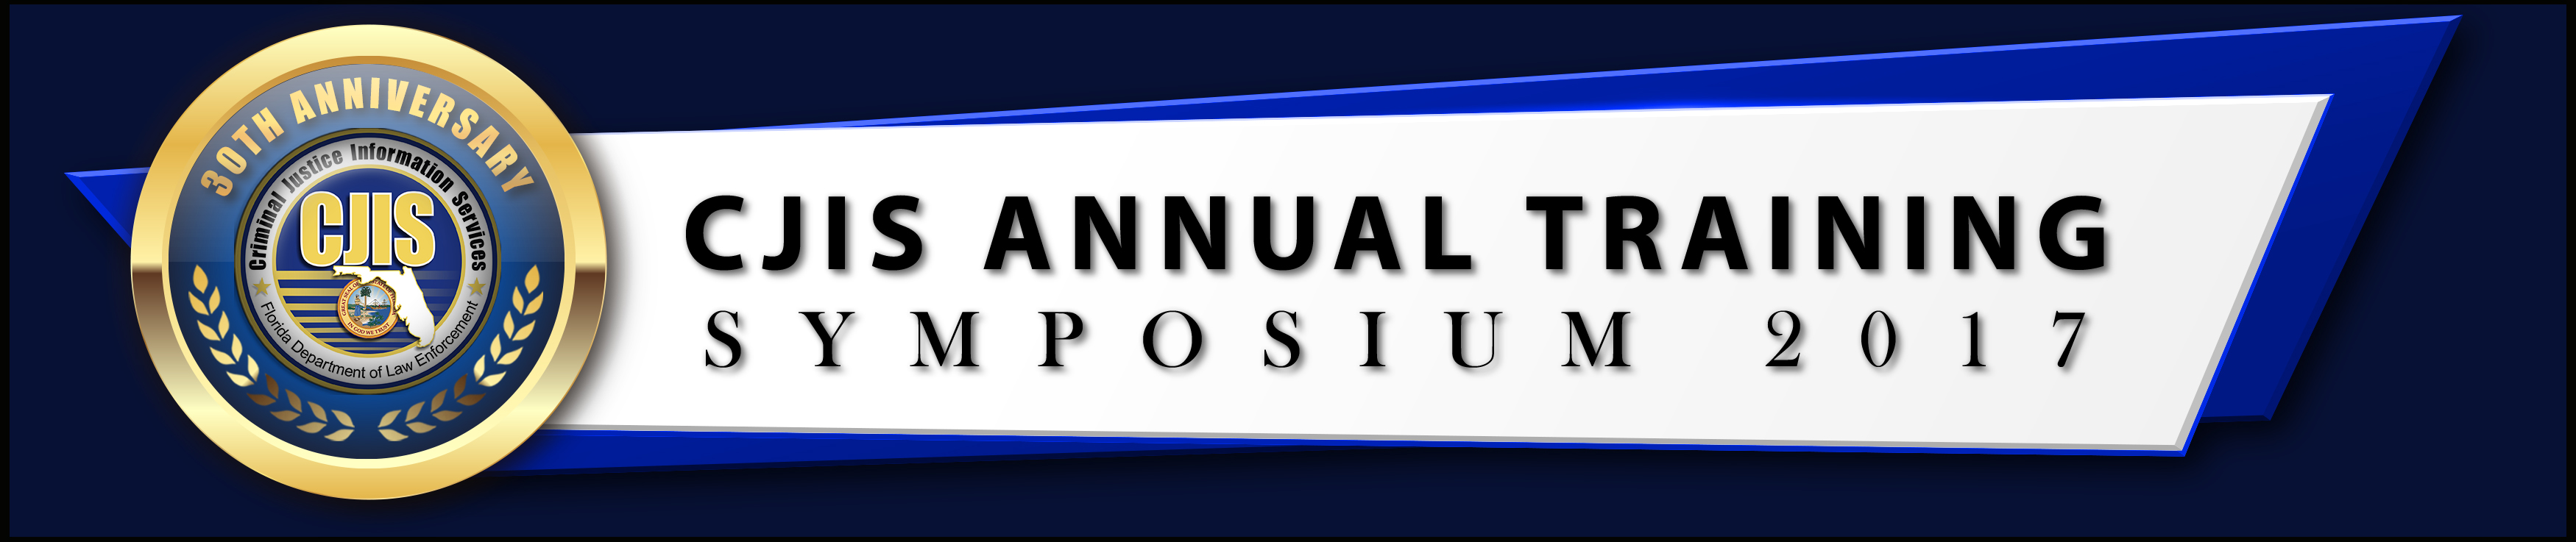 2017 CJIS 30th Annual Training Symposium